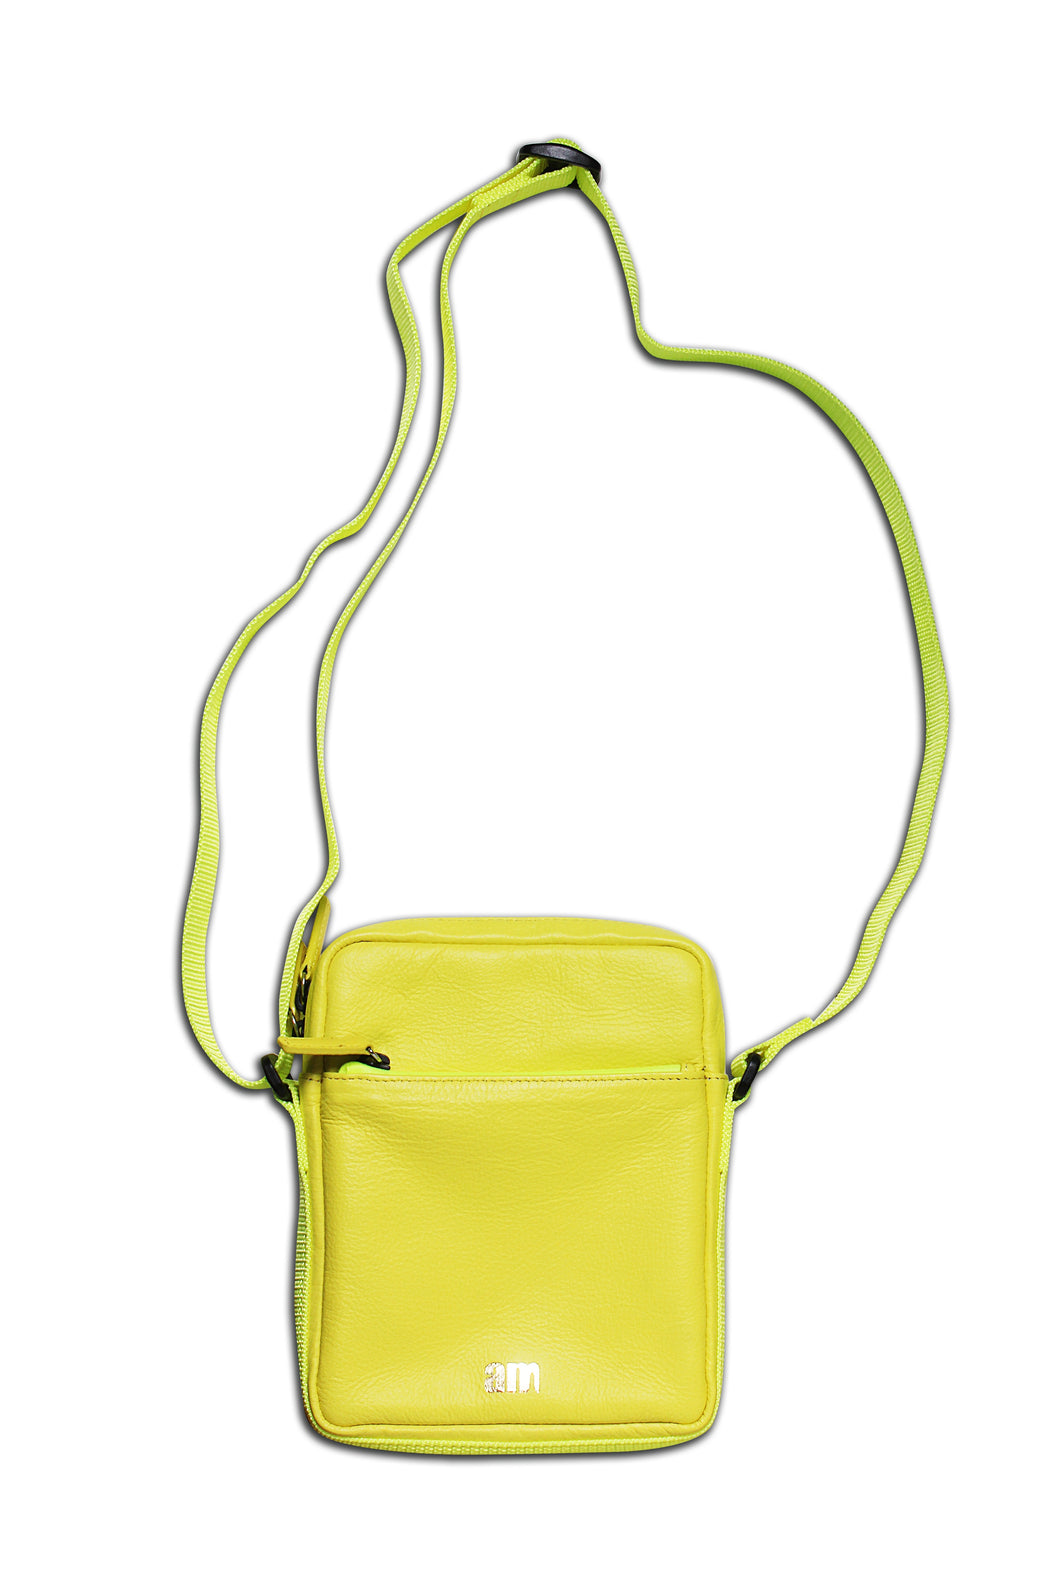 AM x KUBERA SHOULDER BAG YELLOW